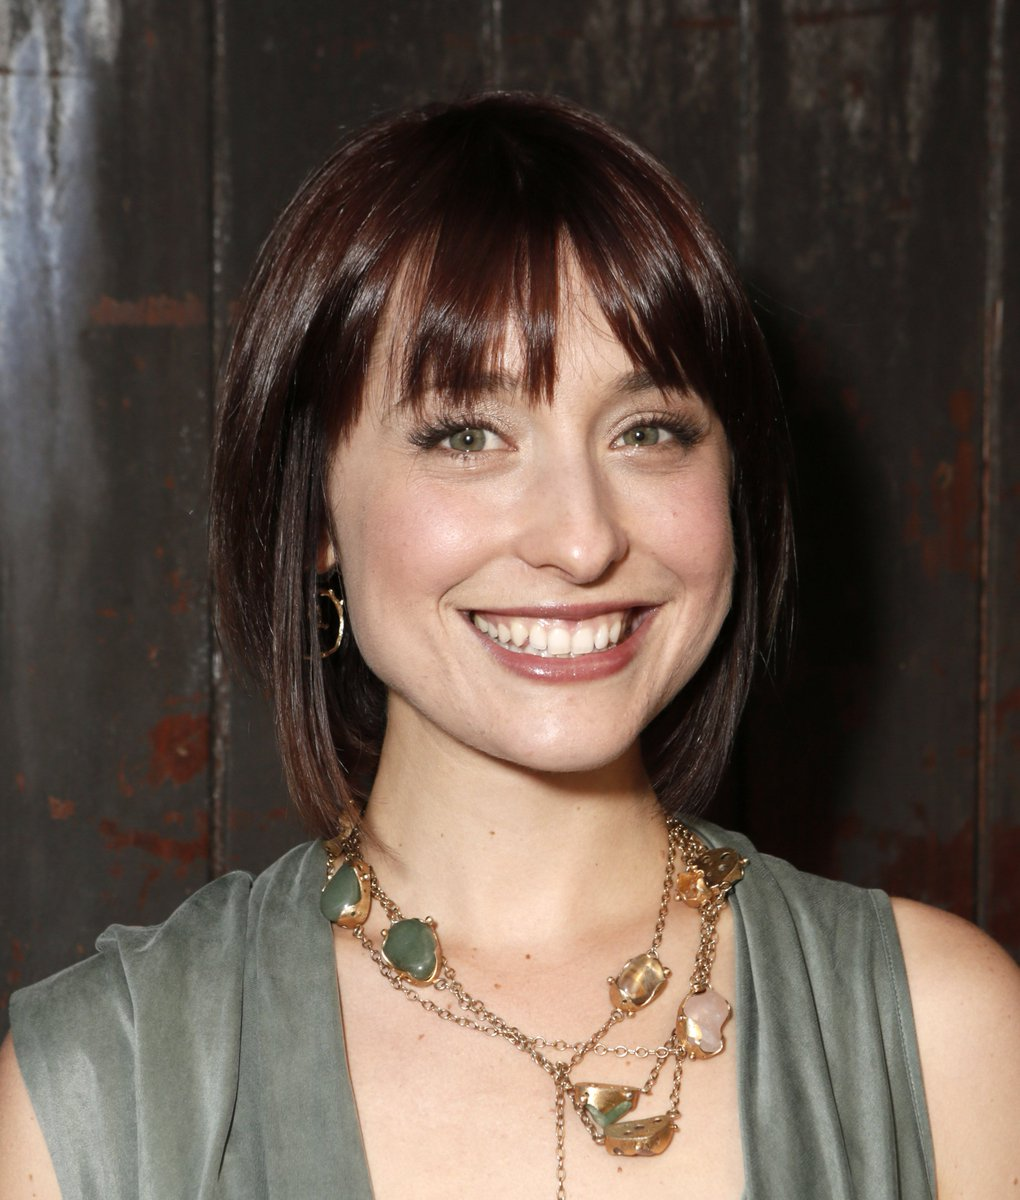 #BREAKING: Law enforcement official tells @NBCNewYork actress Allison Mack has been arrested in connection with the case involving alleged cult leader Keith Raniere and NXIVM.    Mack is expected to appear in Brooklyn Federal Court in the next hour.  (File / AP Photo)